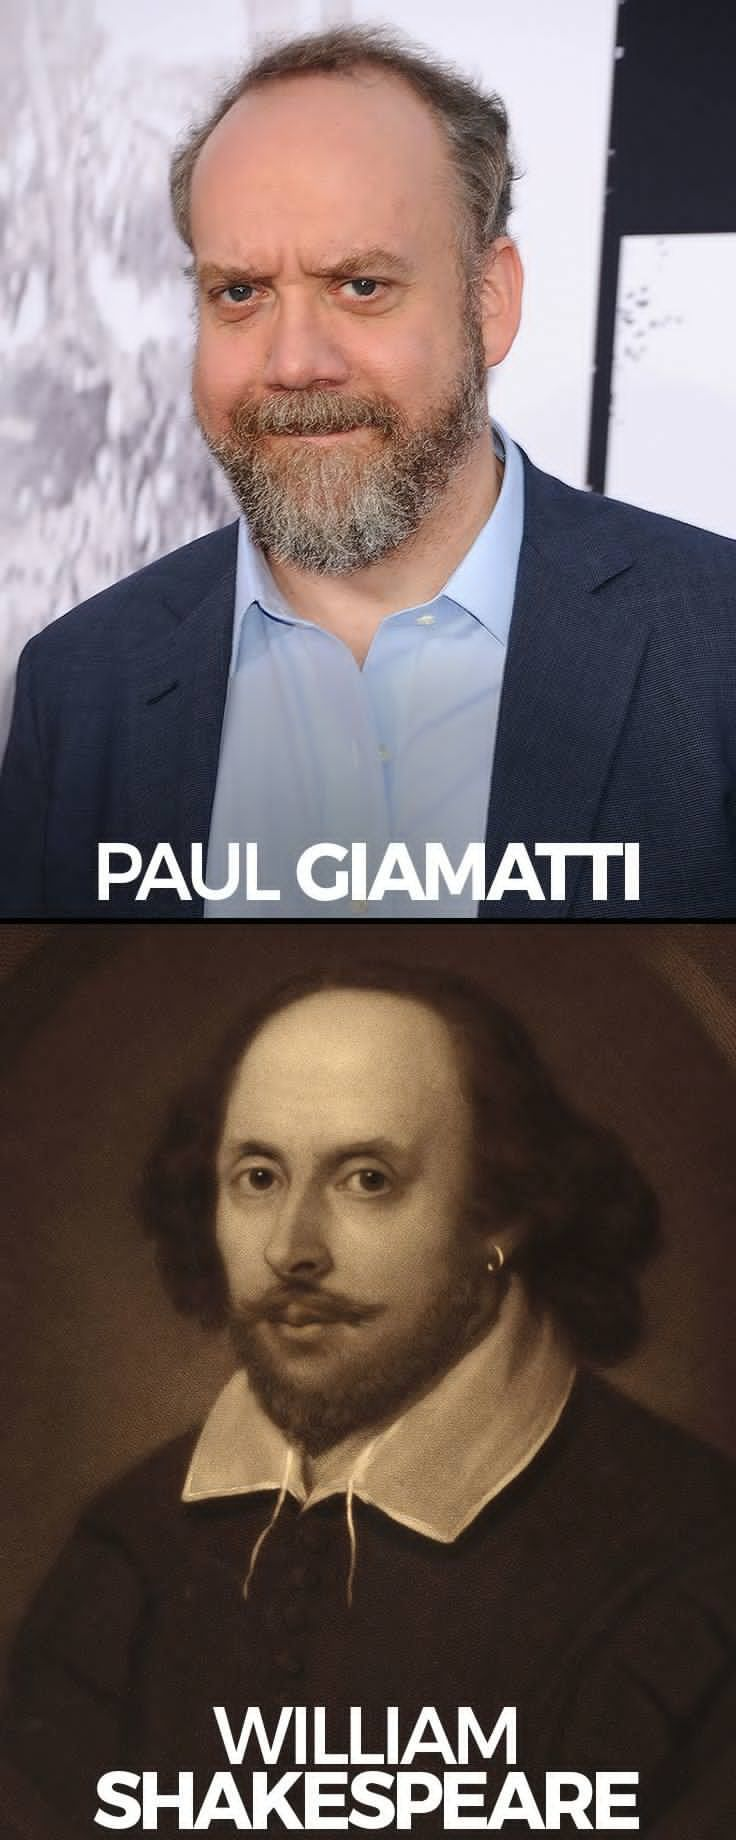 What the historical characters actually looked like